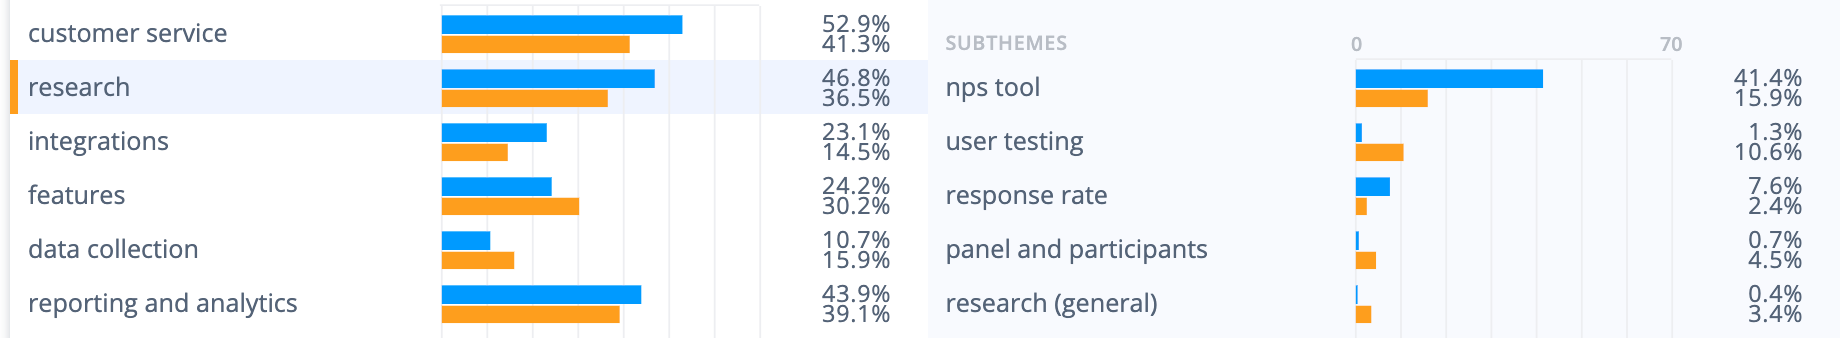 AskNicely survey tool strengths: NPS tool and research capabilities are a pro